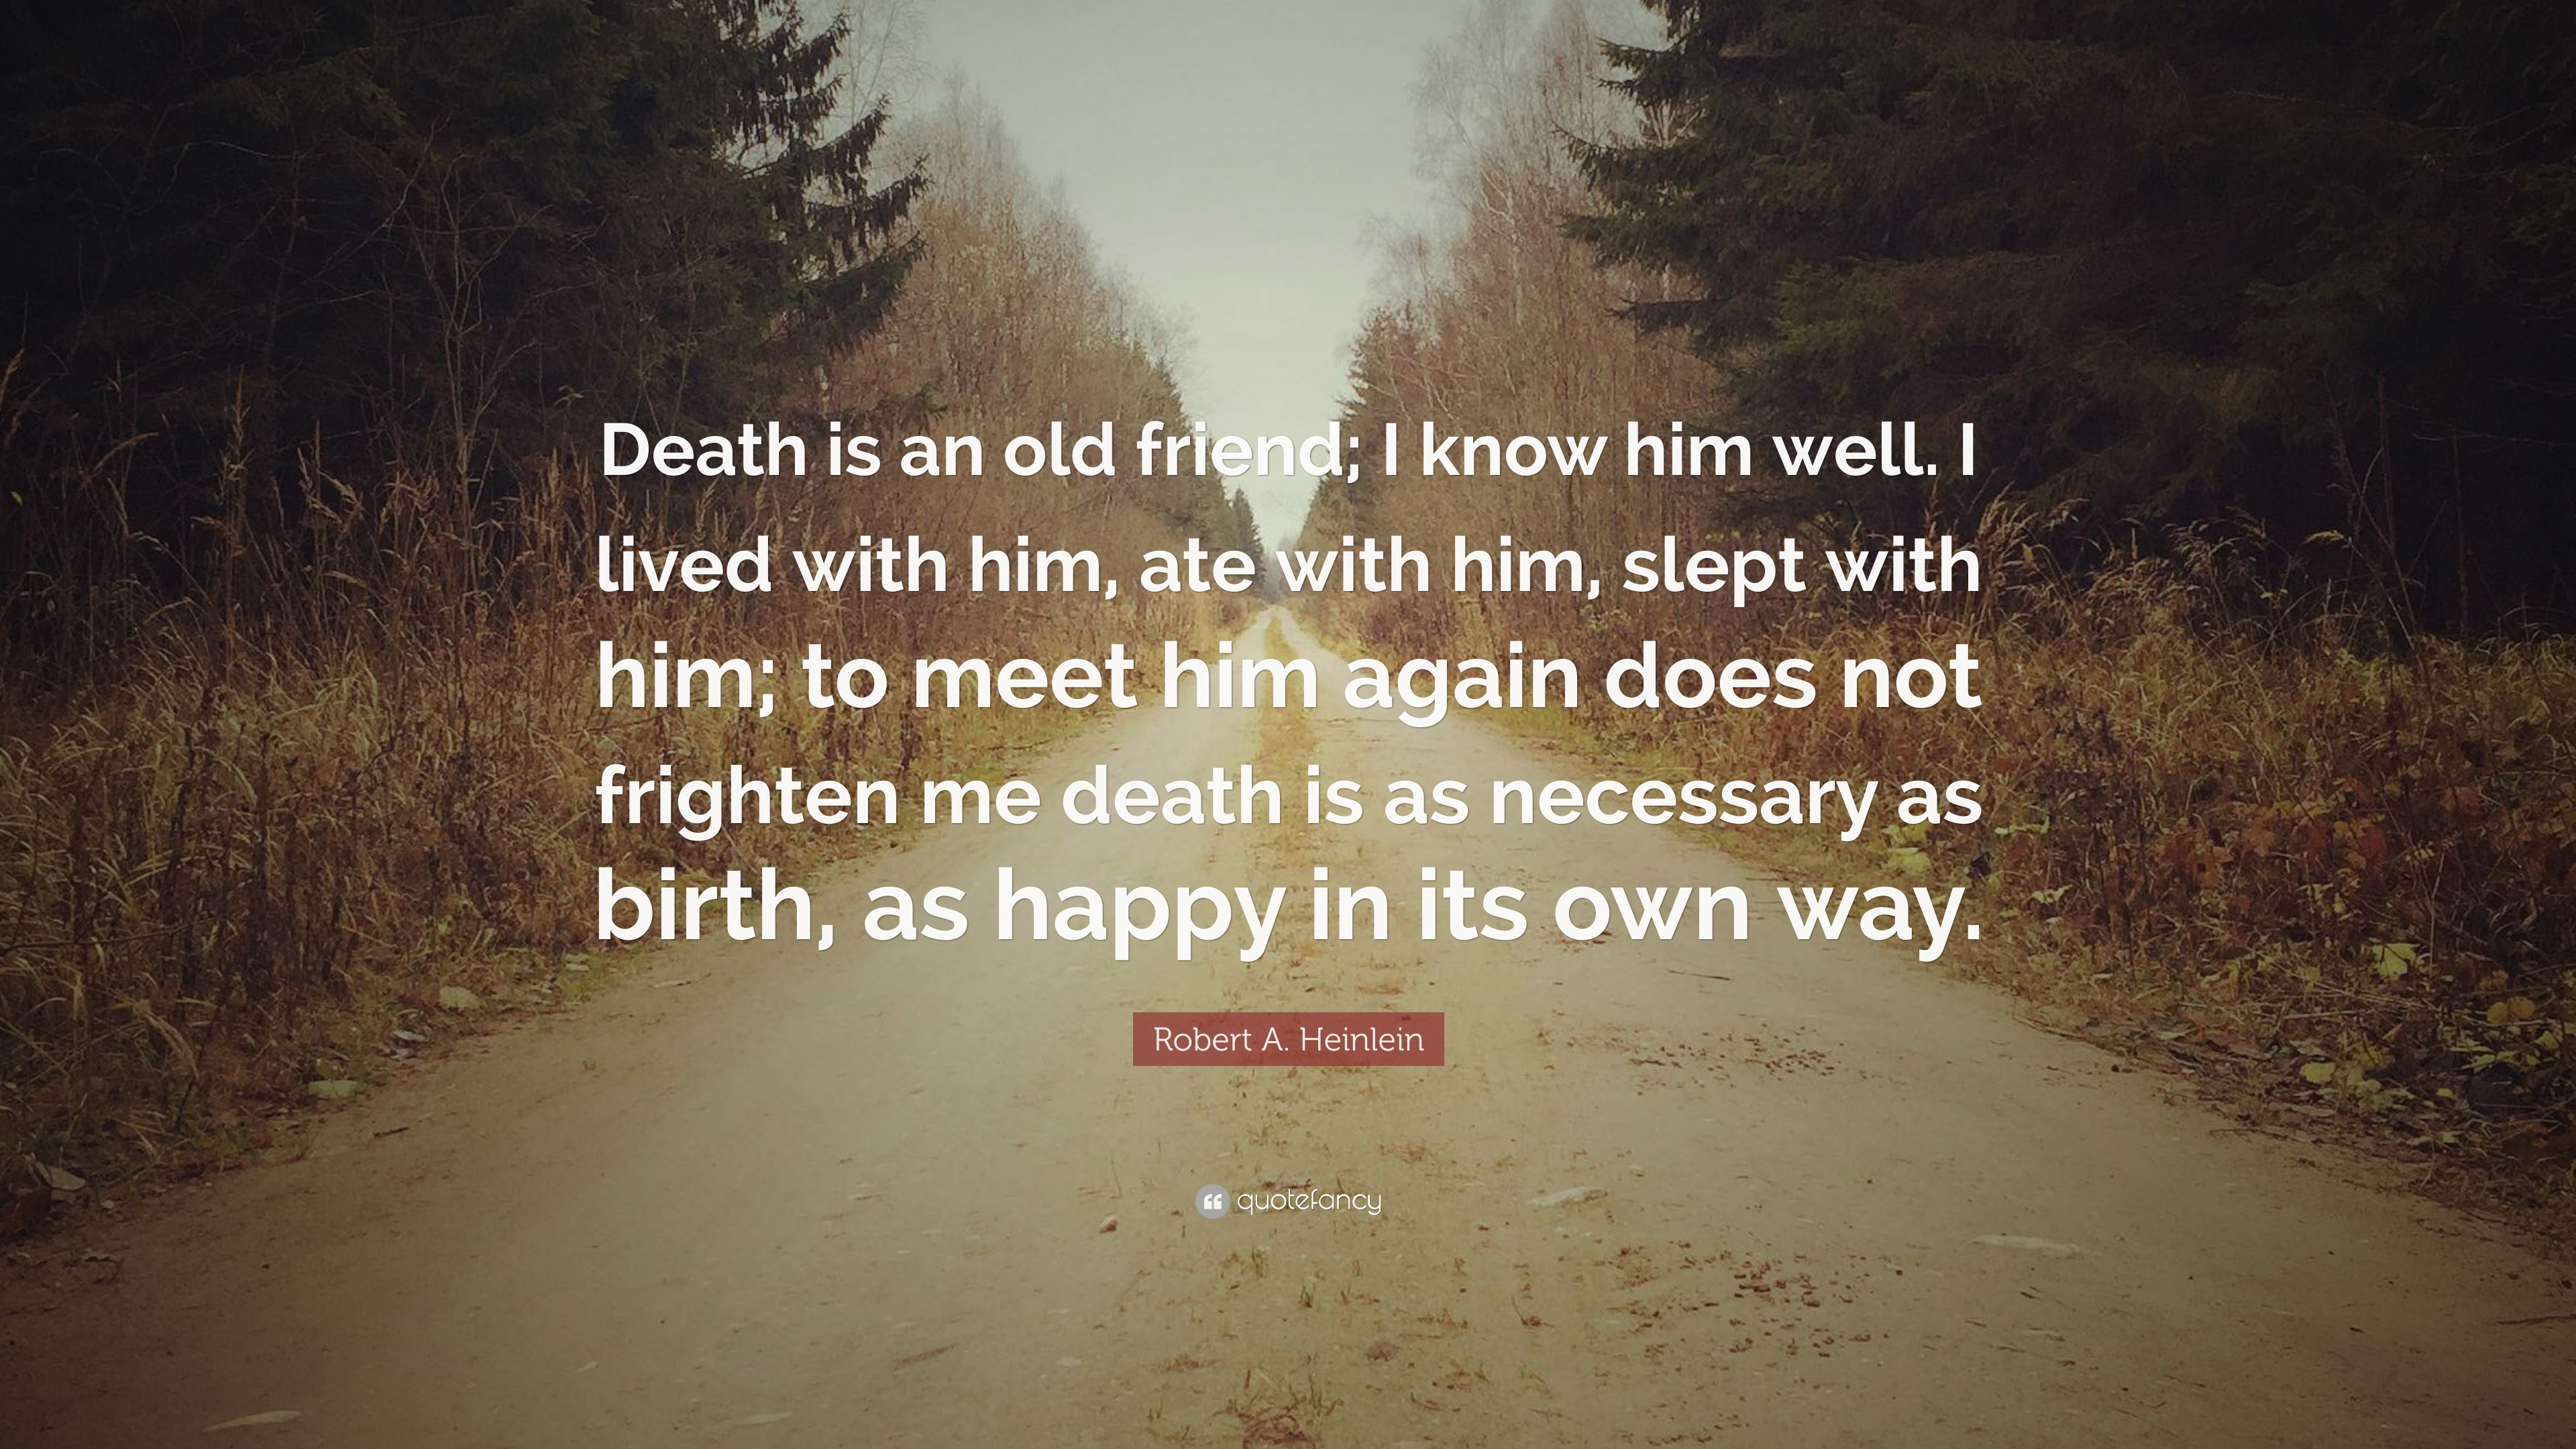 robert a heinlein quote death is an old friend i know him well